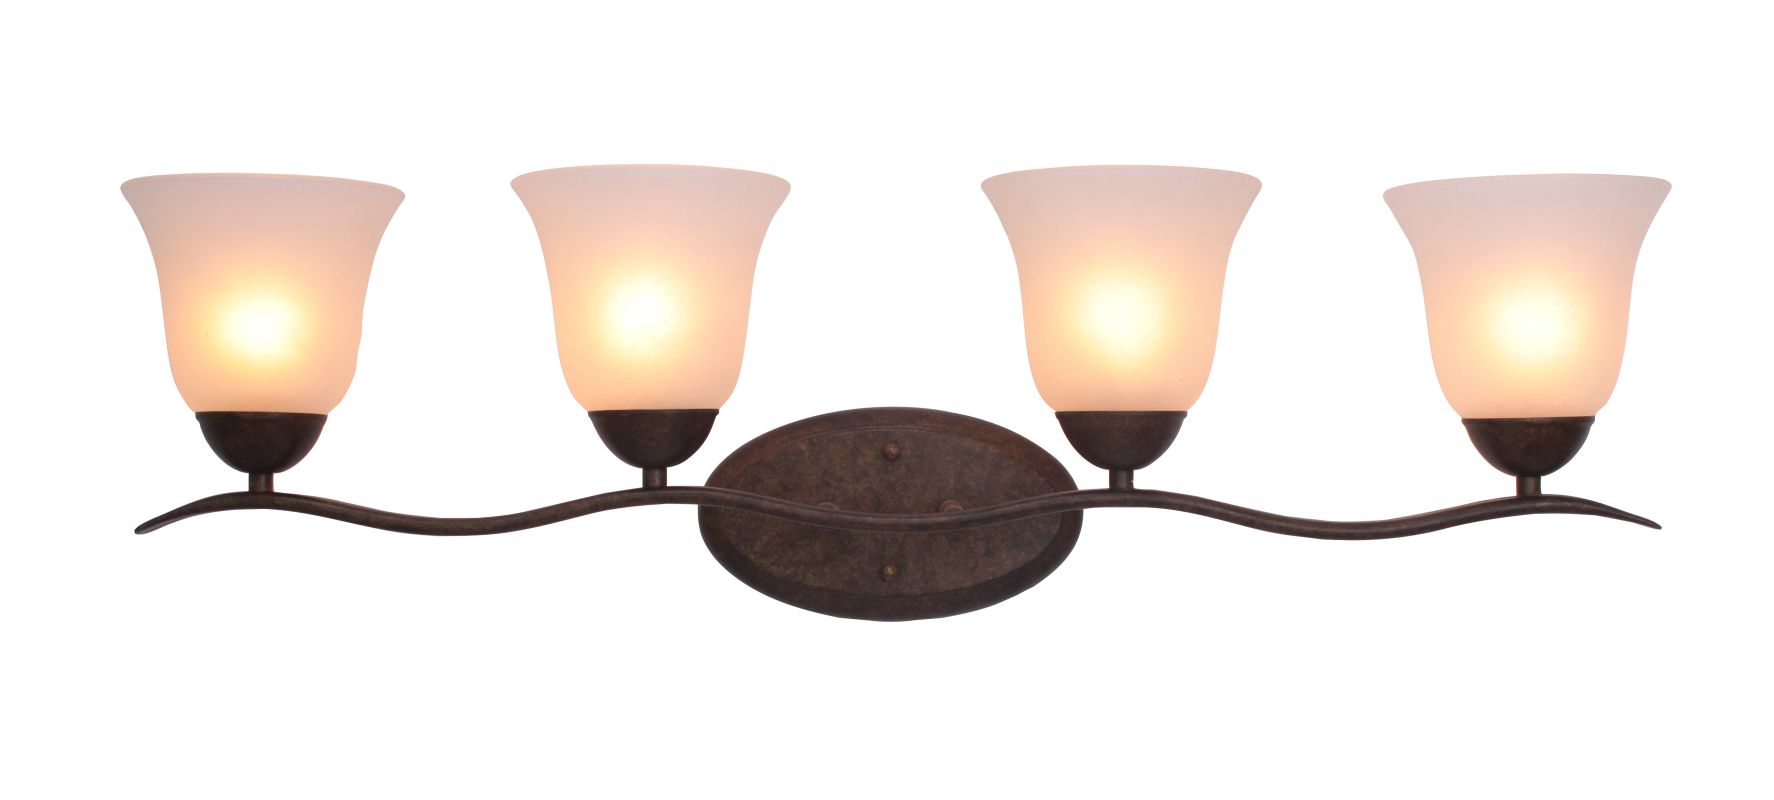 Woodbridge Lighting 50053 Beaconsfield 4 Light Vanity Light Marbled Sale $127.09 ITEM: bci2195877 ID#:50053-MBZ :